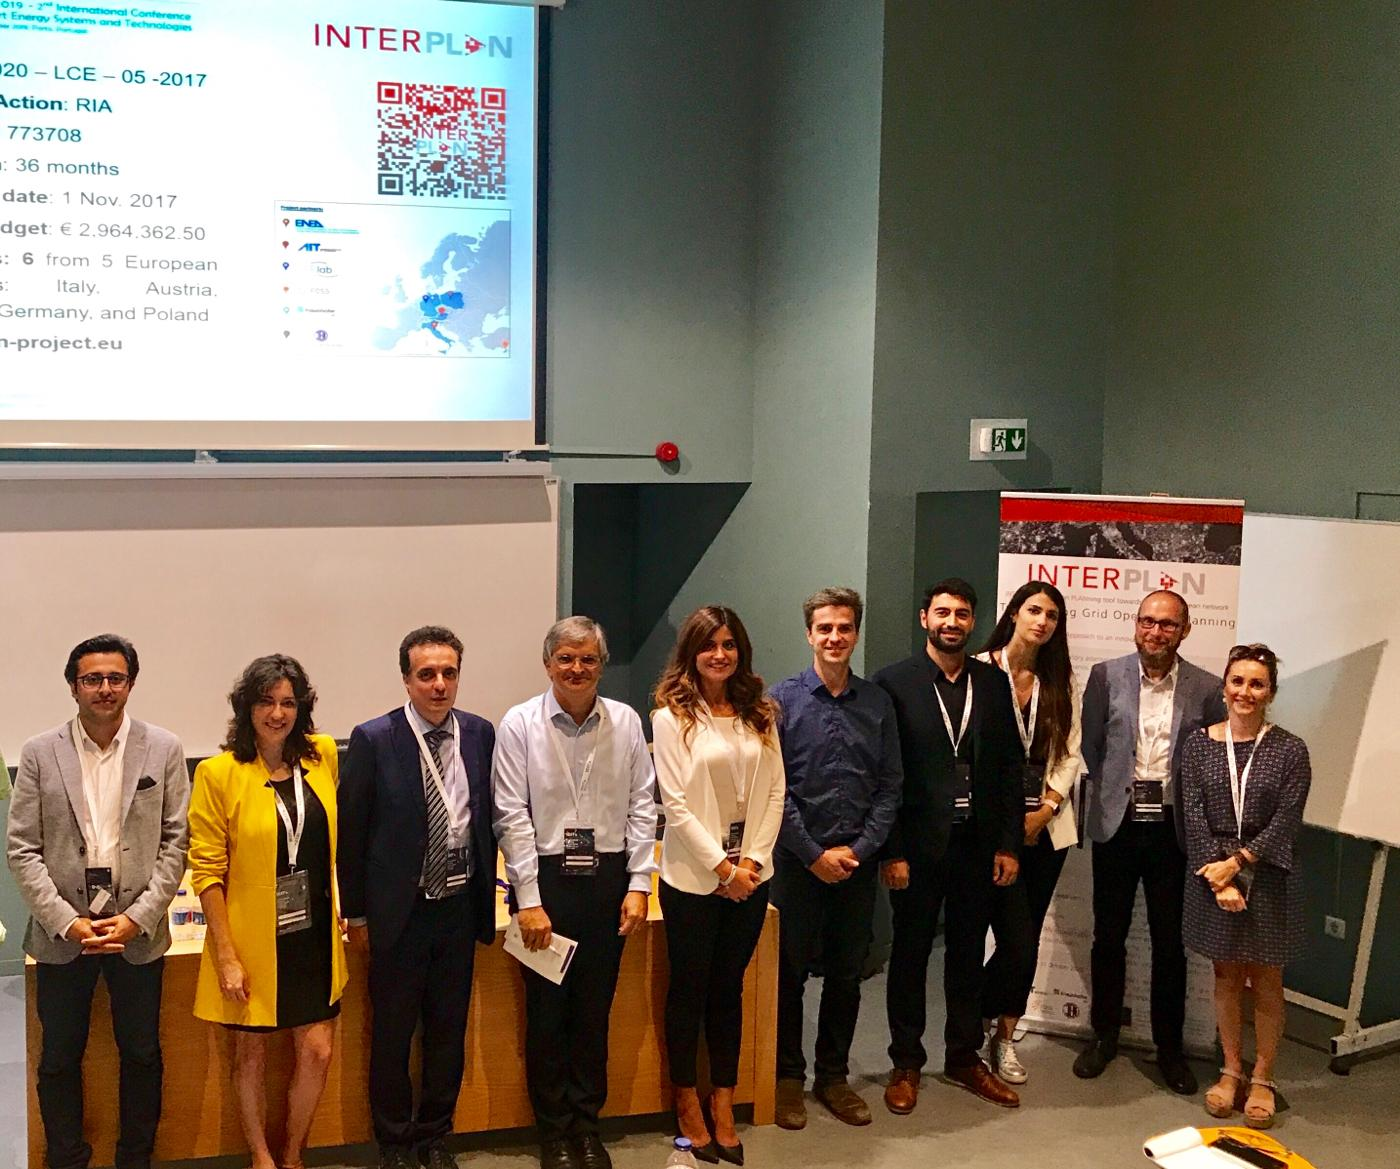 INTERPLAN Workshop at SEST 2019 Conference